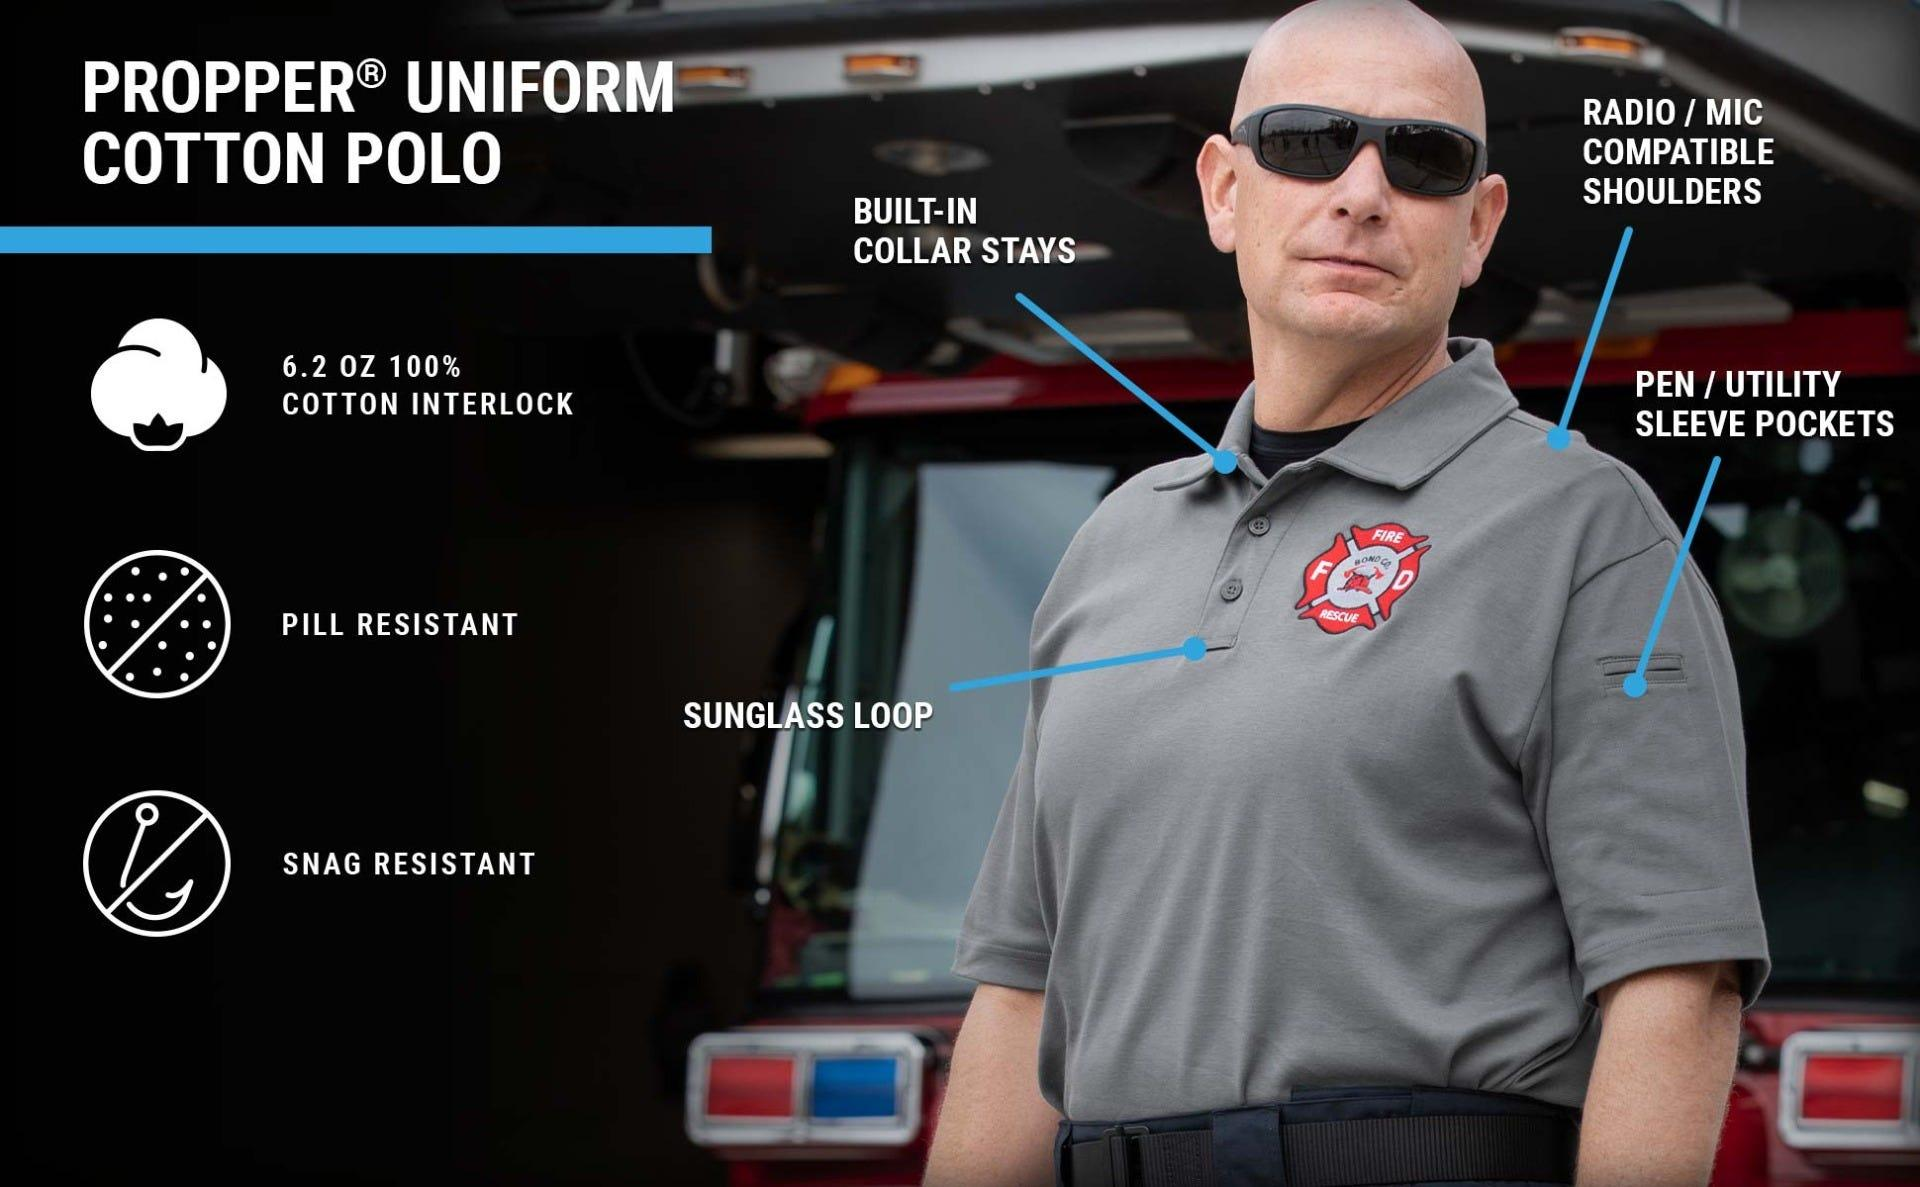 100% soft Cotton uniform polo on a firefighter with collar stays, mic clip, pen pocket won't melt or drip in fire.